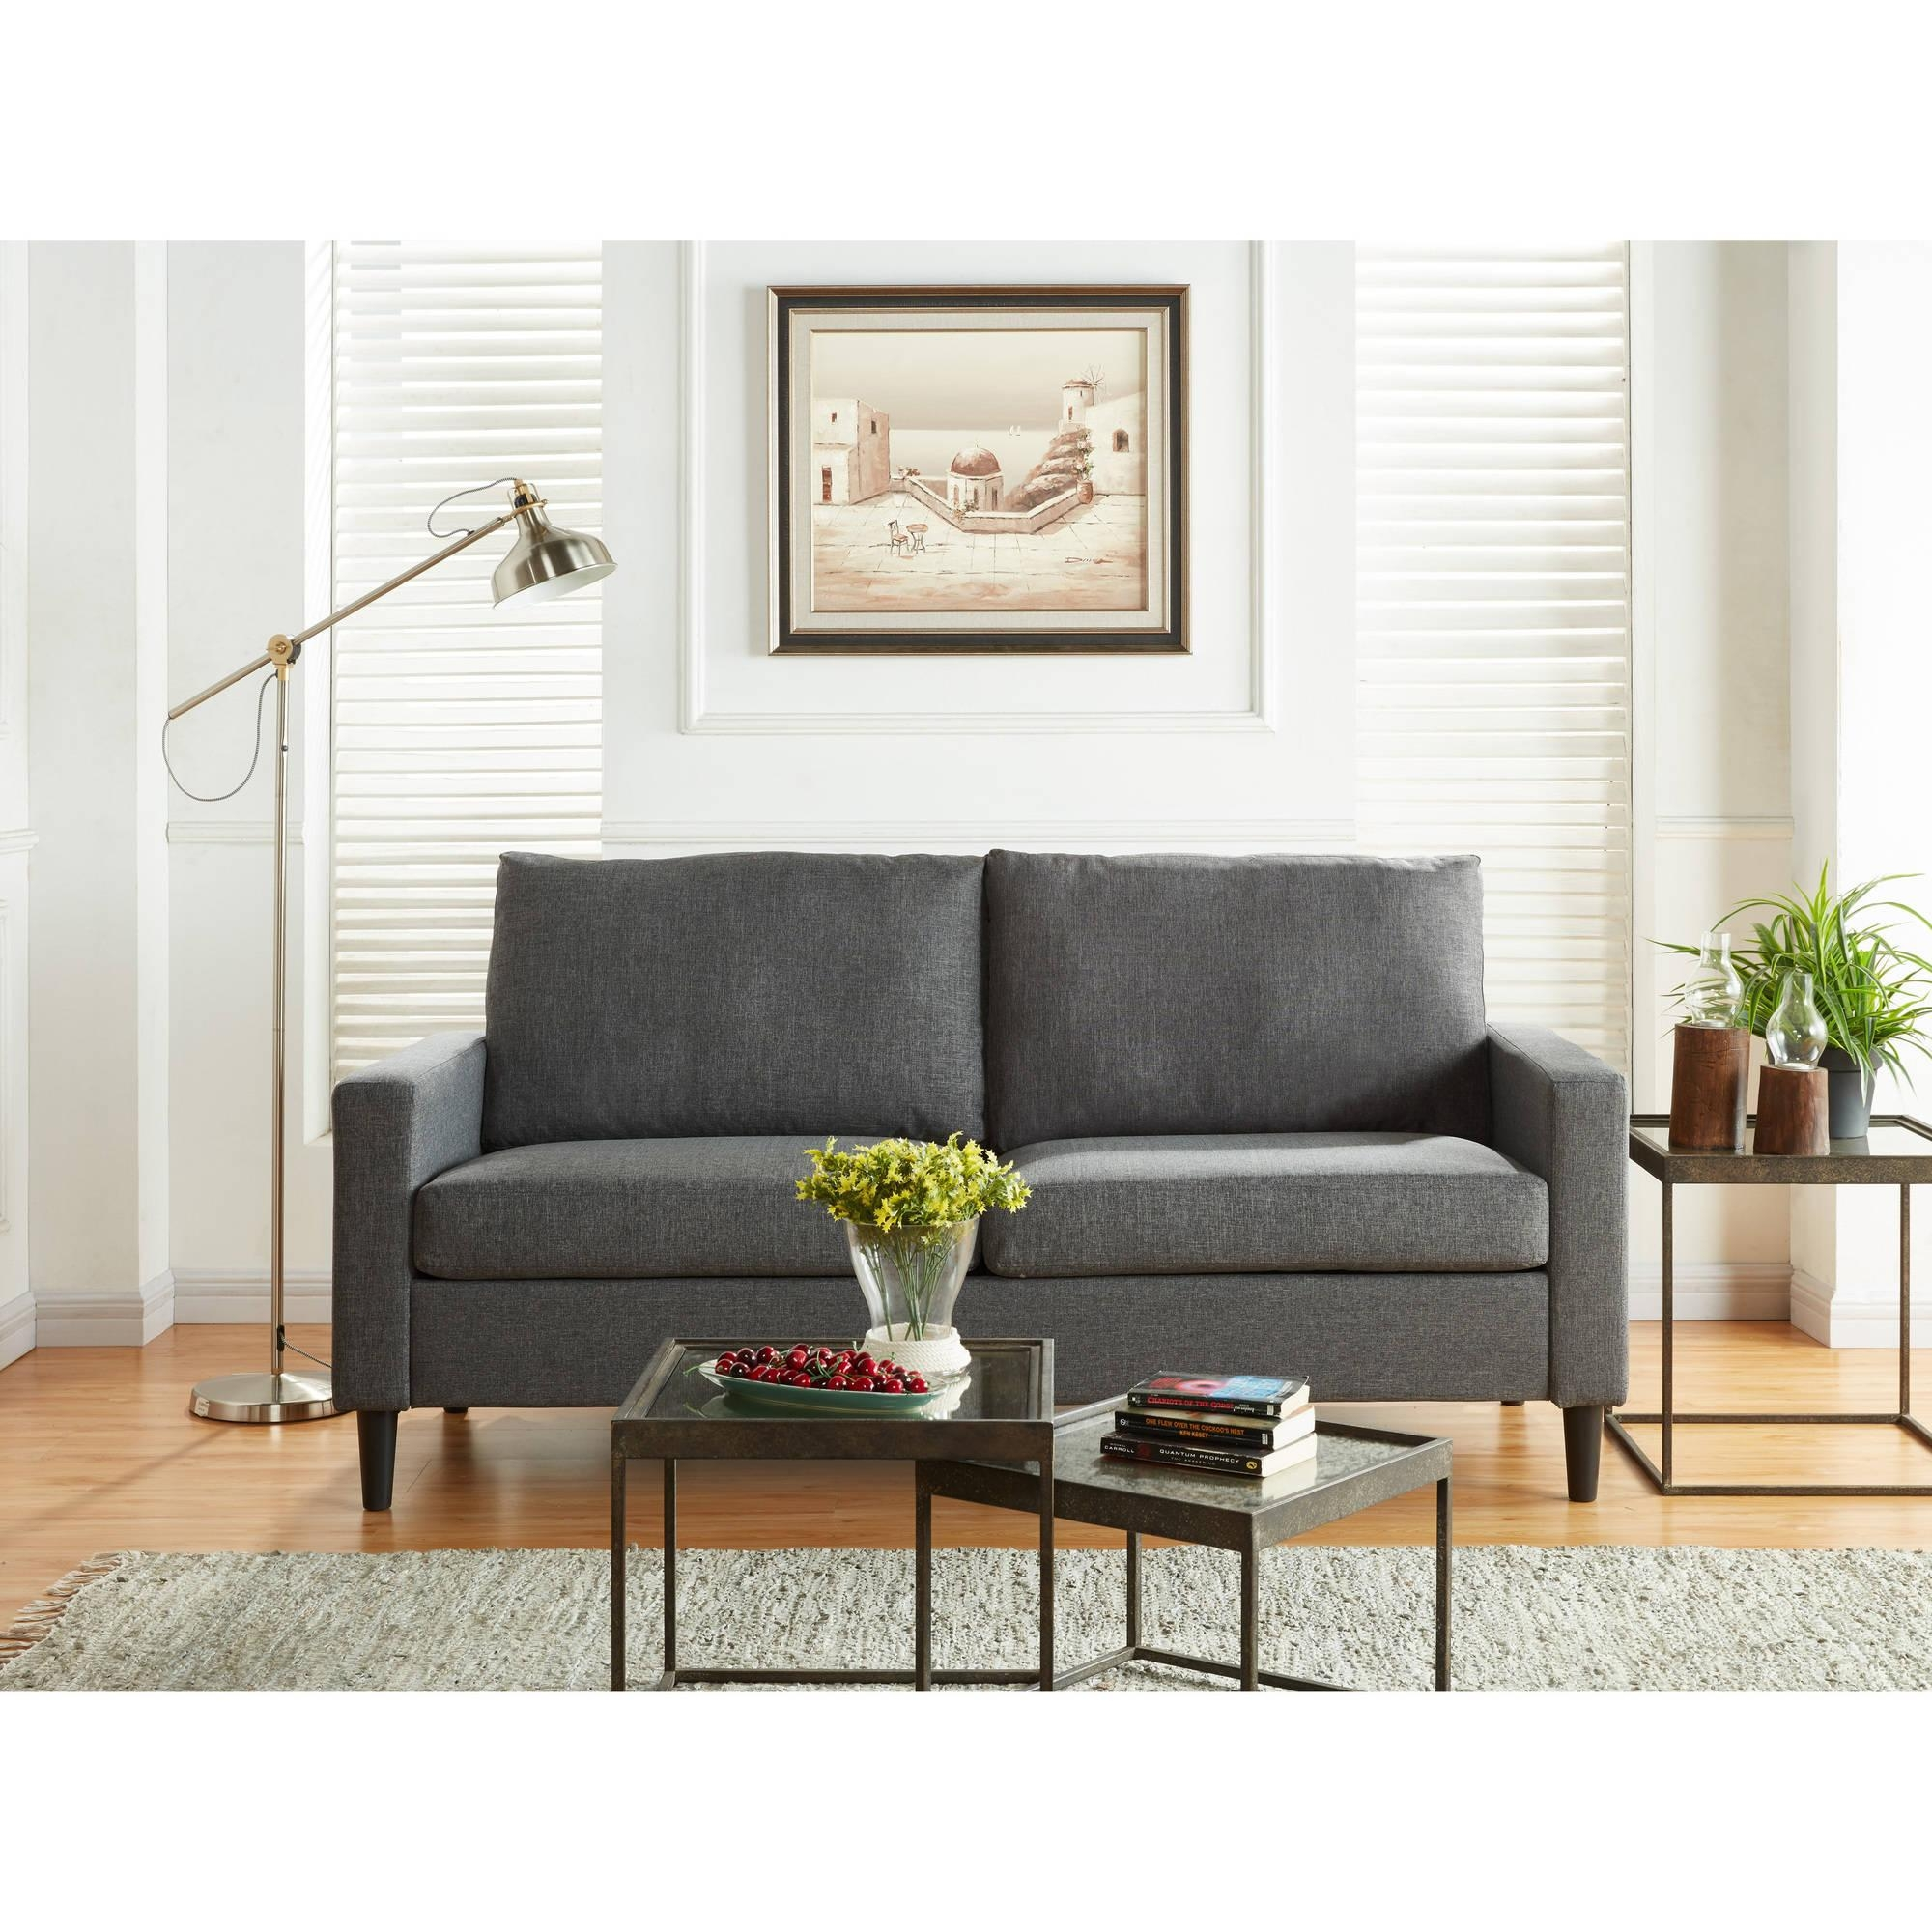 Sectional Sleeper Sofas Intended For Big Lots Sofa Sleeper (View 17 of 20)